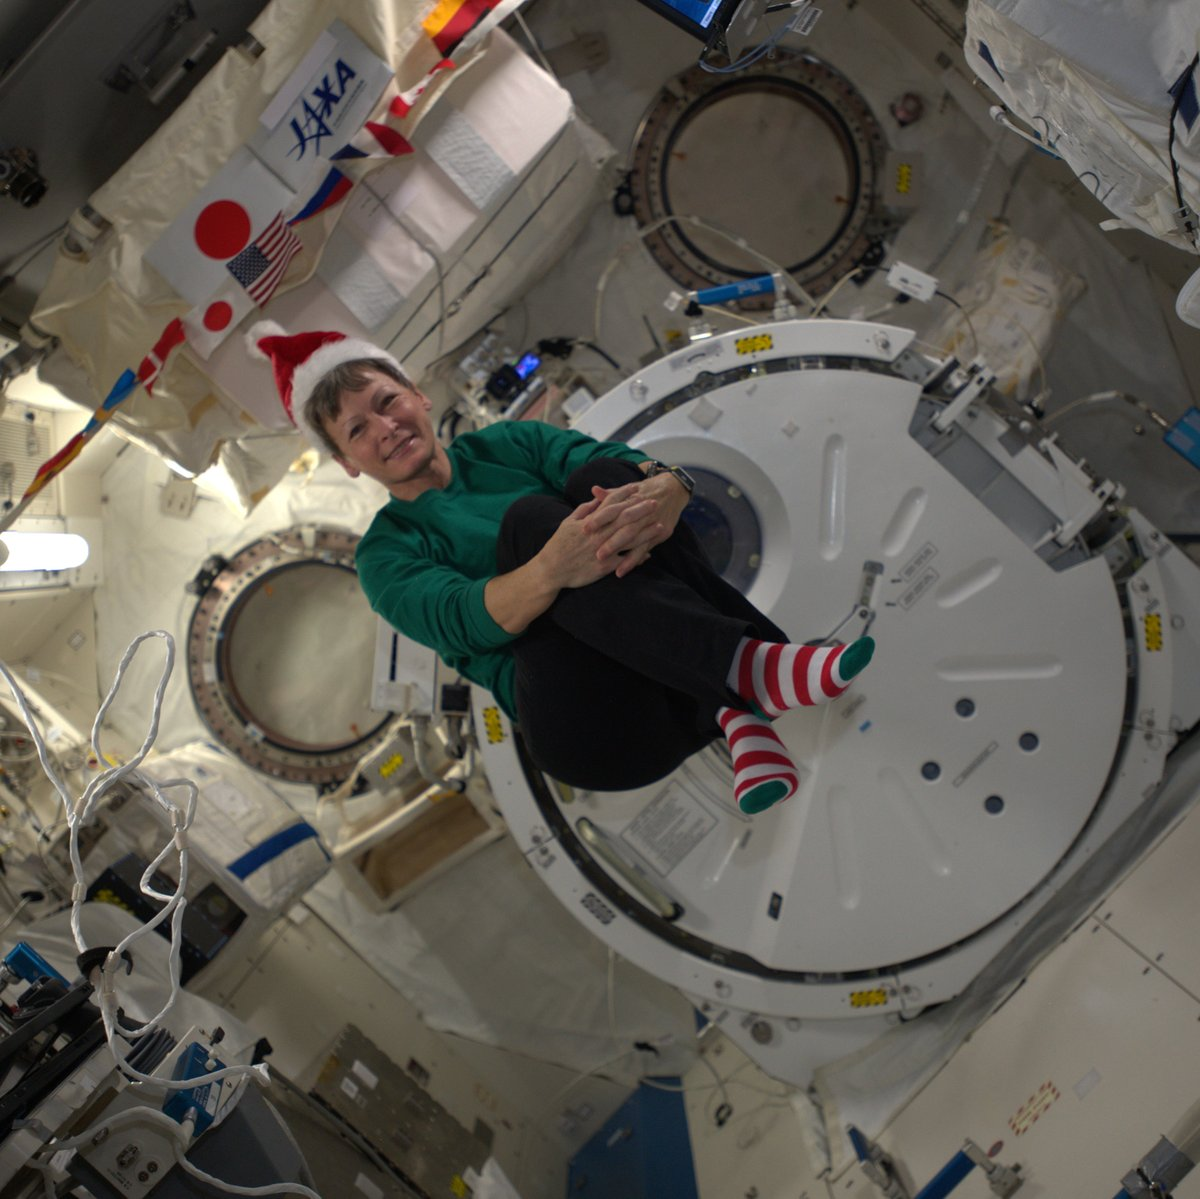 This is how astronauts celebrate Christmas in space, in case you were wondering